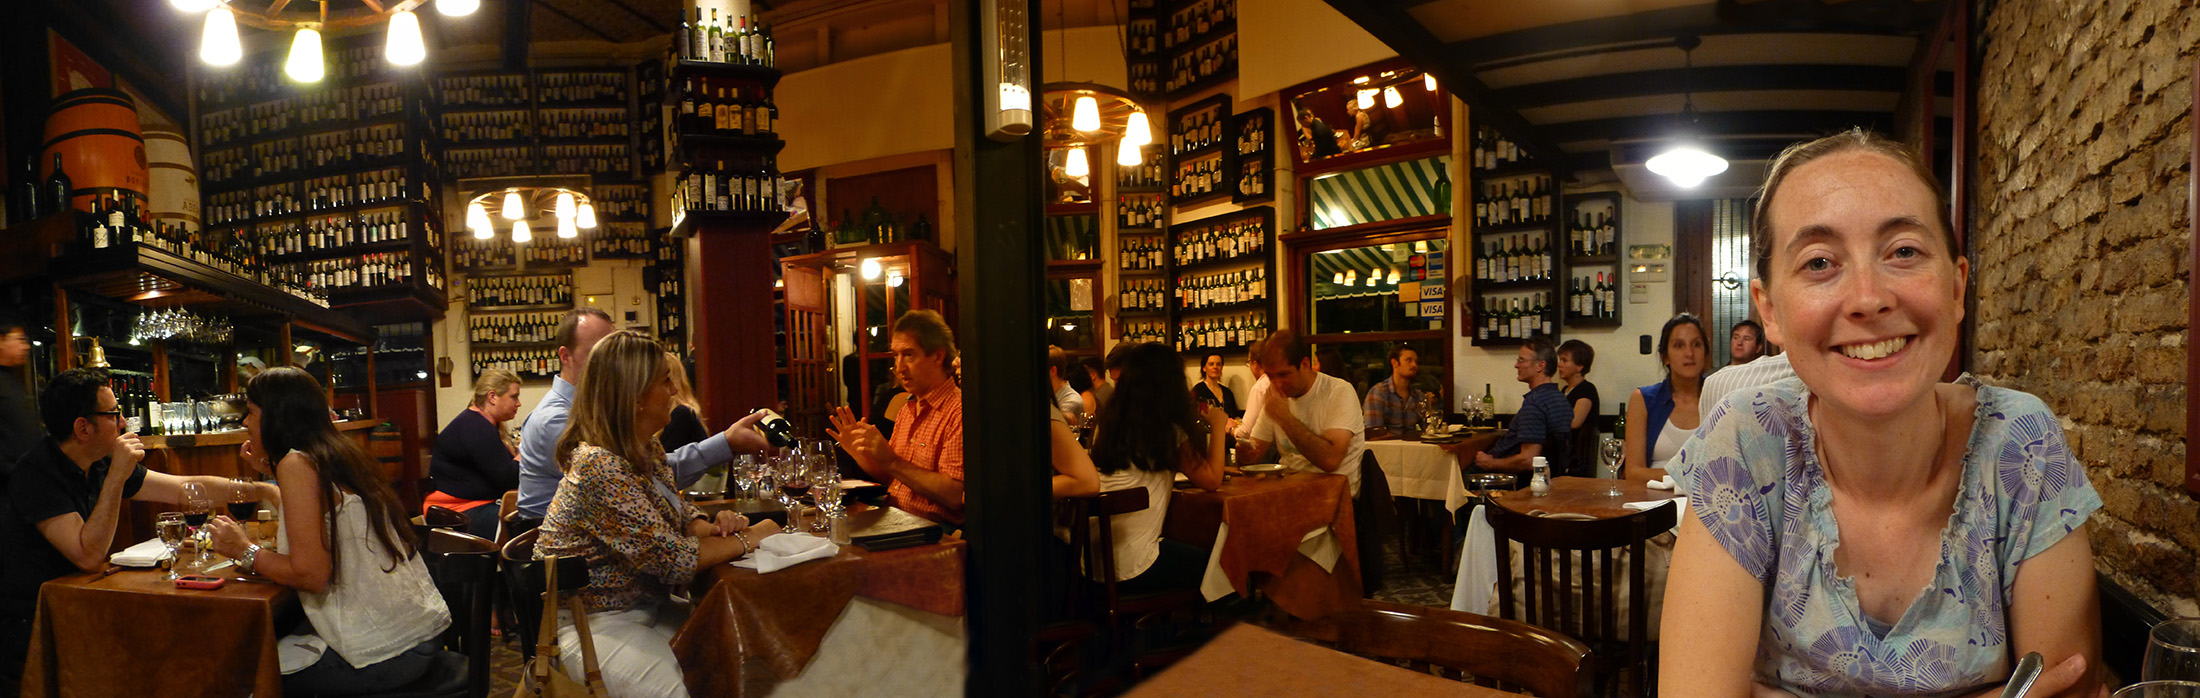 Our Final Dinner In Buenos Aires